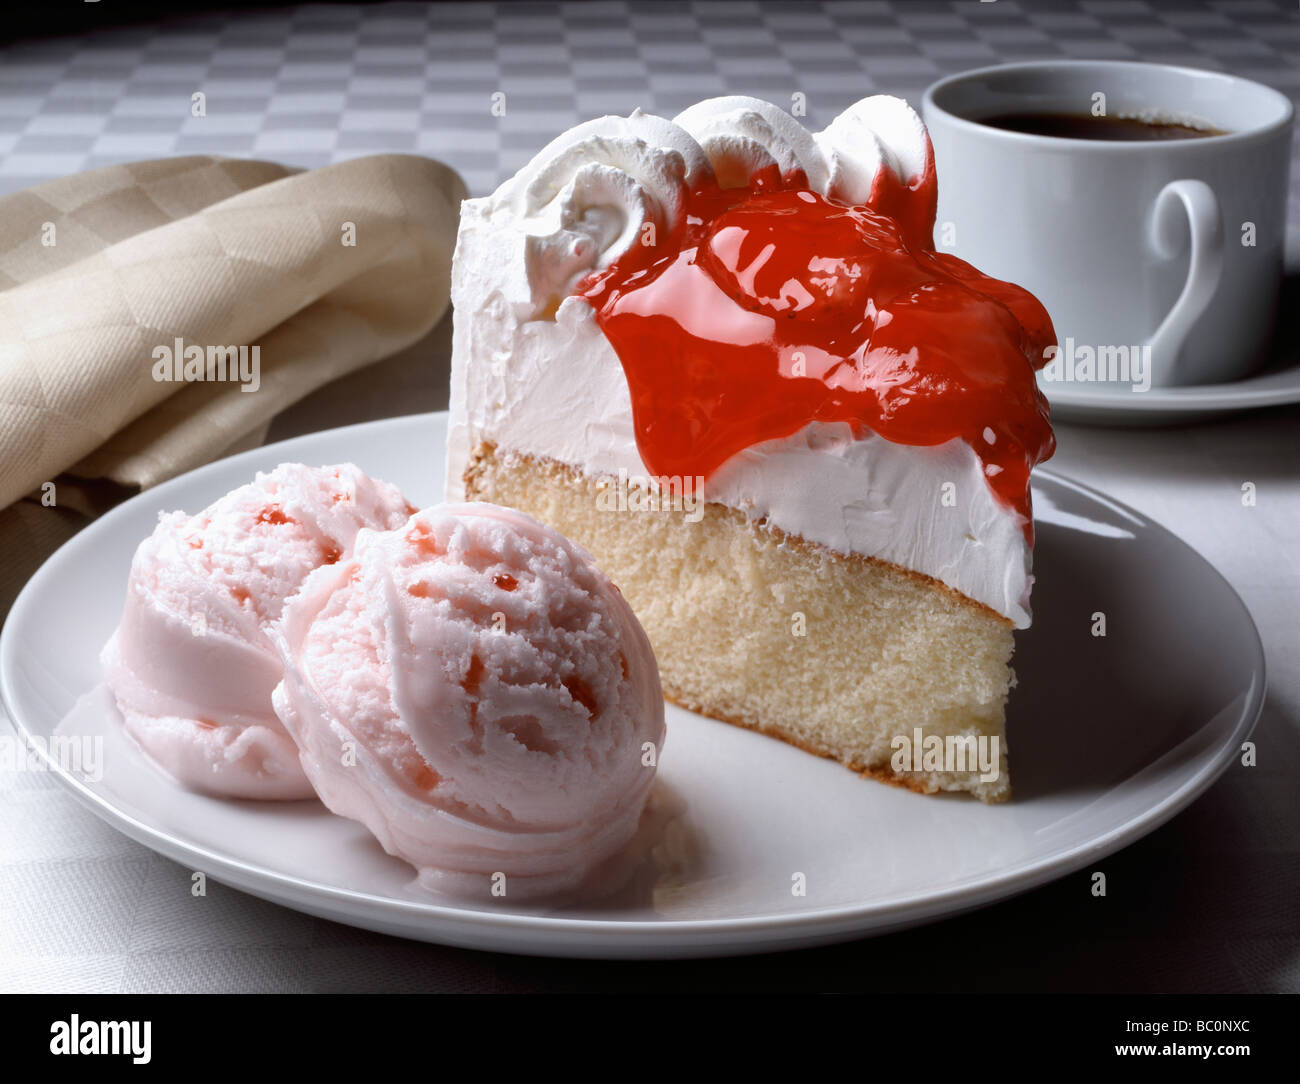 Strawberry topped white cake on a plate with strawberry ice cream and a cup of black coffee. : cake and plate - pezcame.com